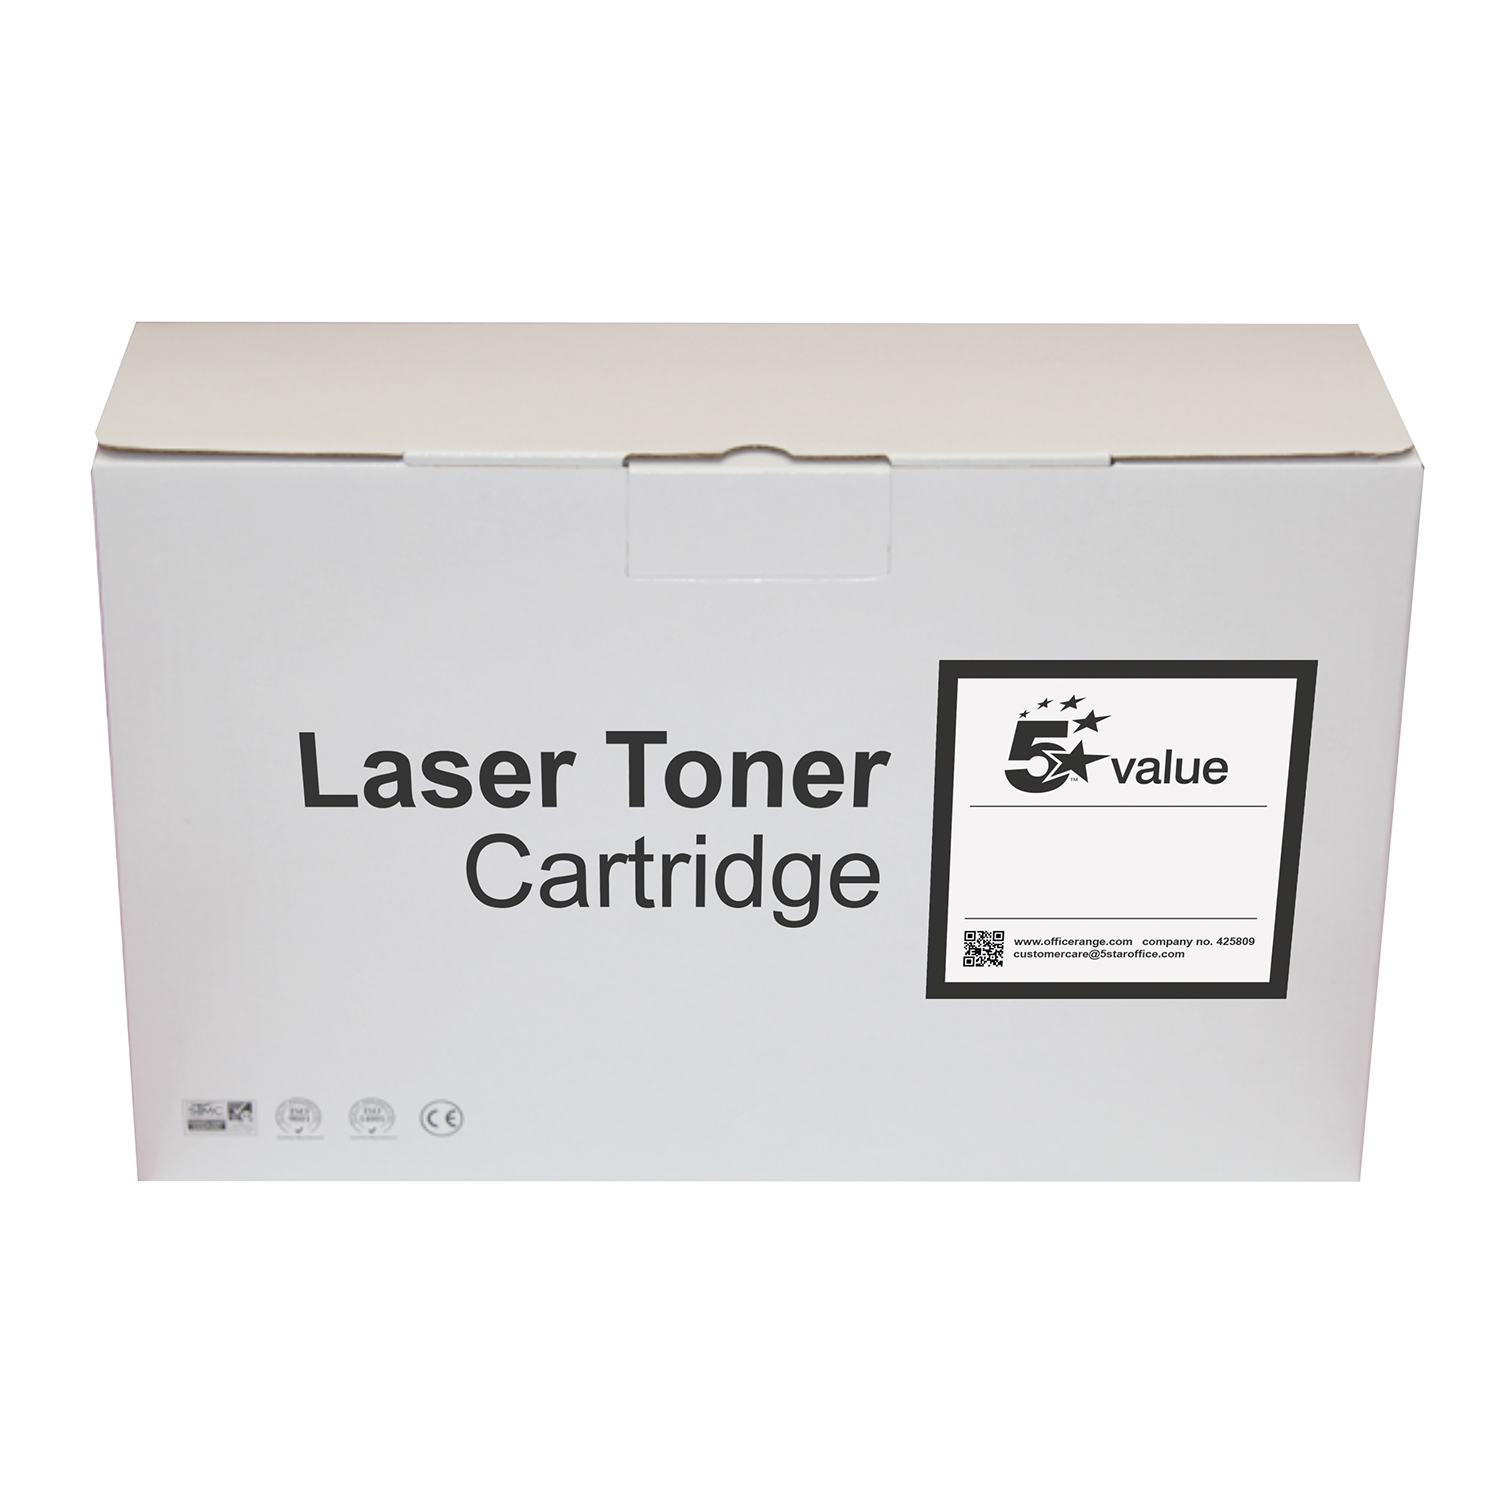 5 Star Value Remanufactured Laser Toner Cartridge 10000pp Black HP No. 42A Q5942A Alternative